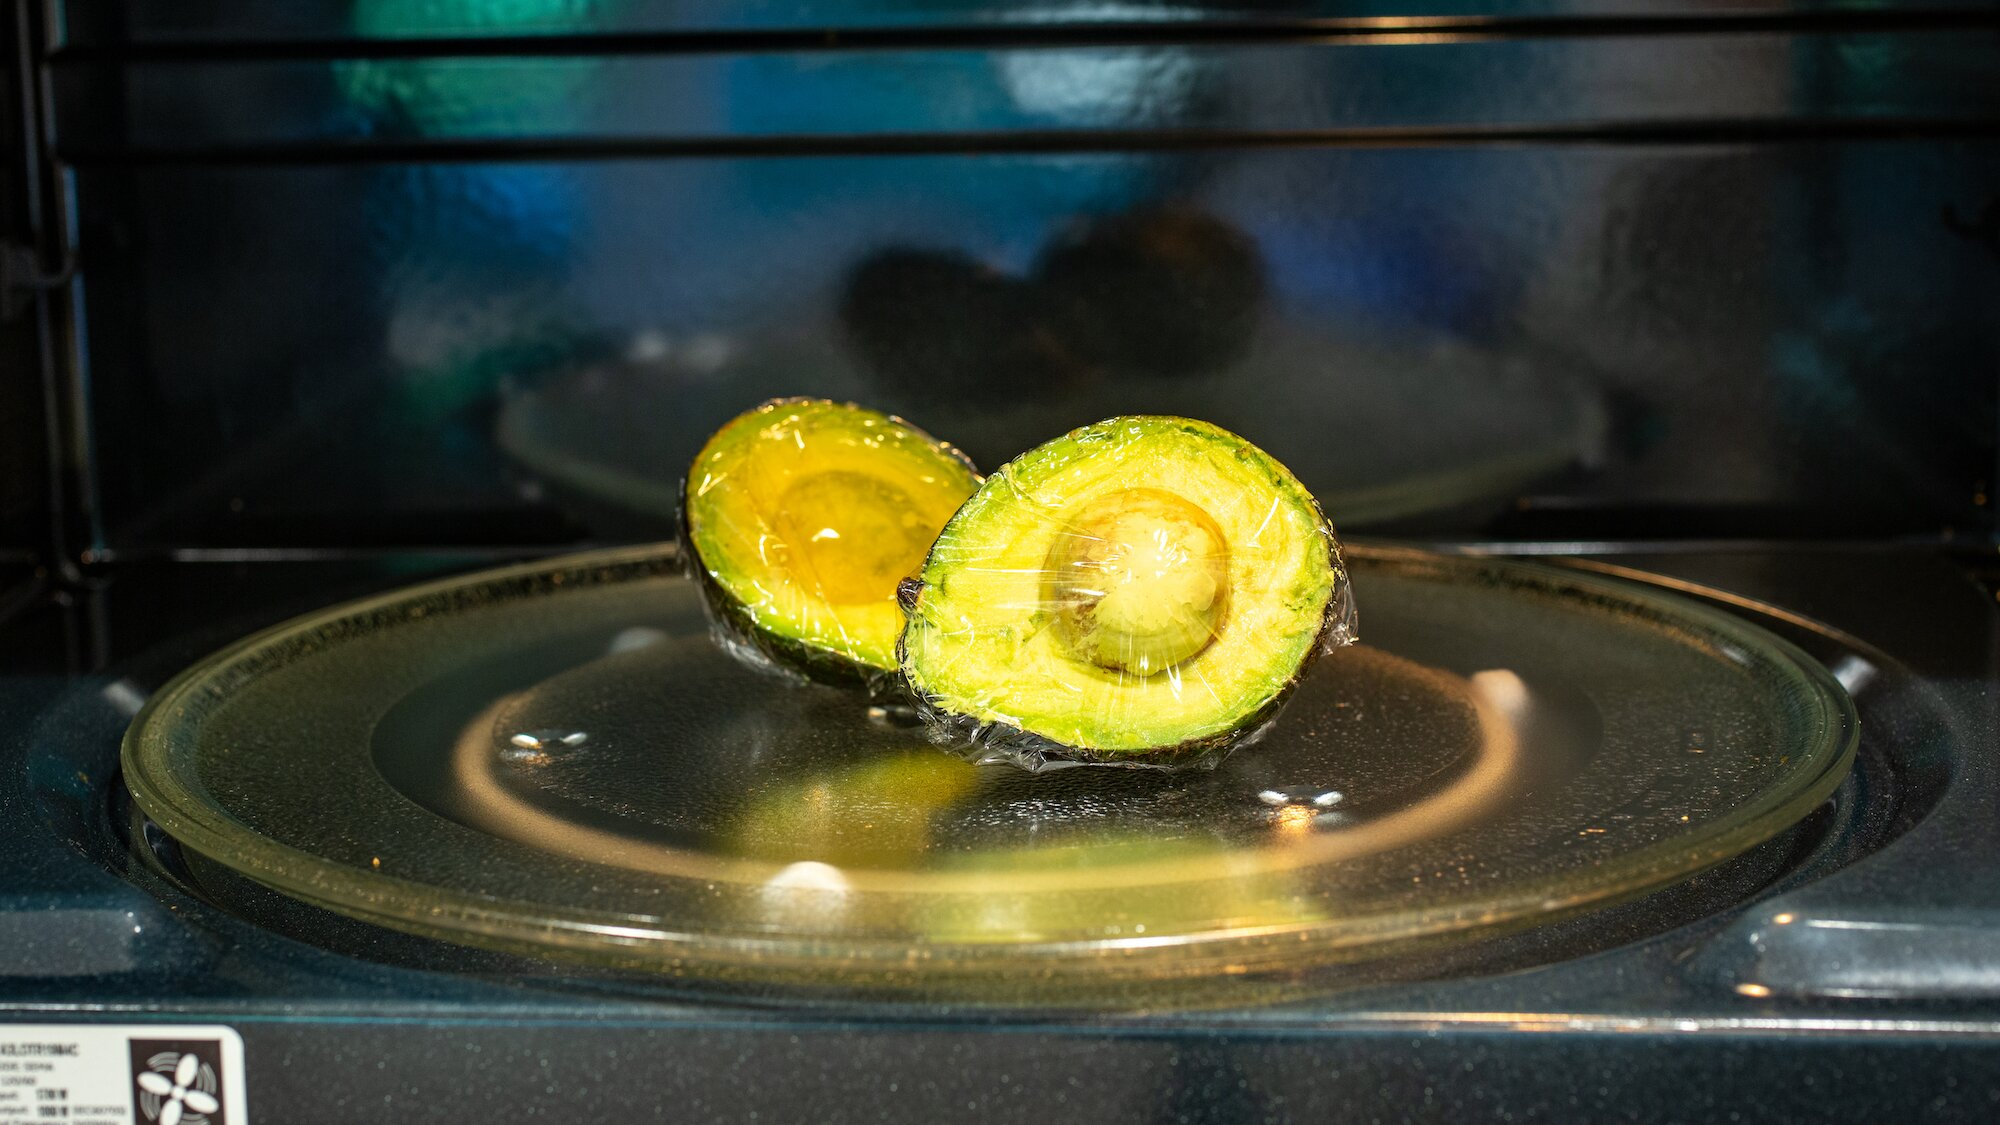 avocado wrapped in plastic wrap in a microwave